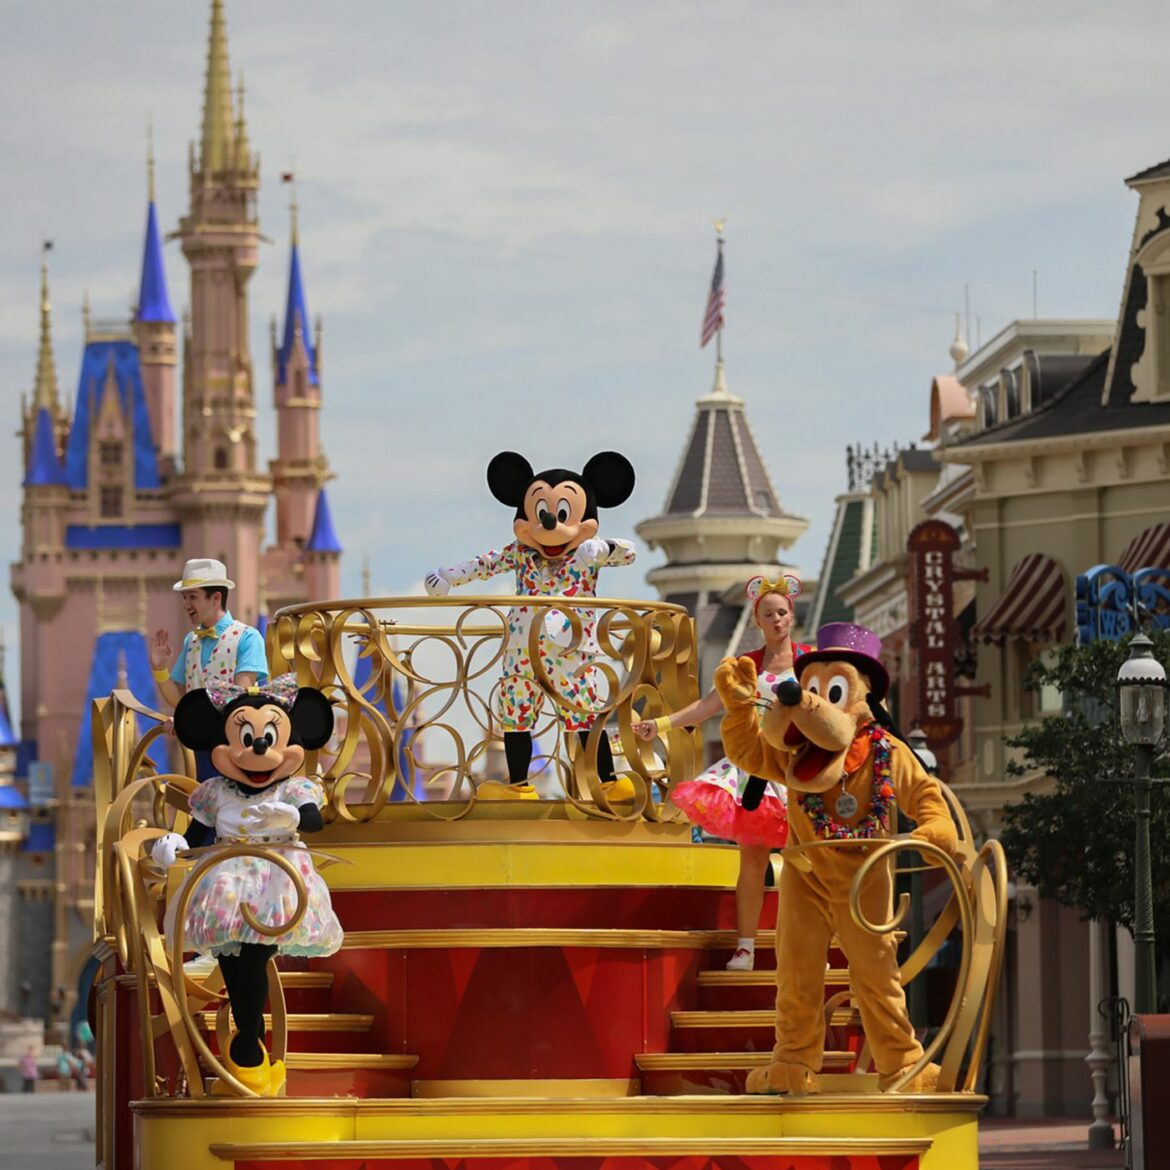 Theme parks in Florida are reducing Covid protocols!